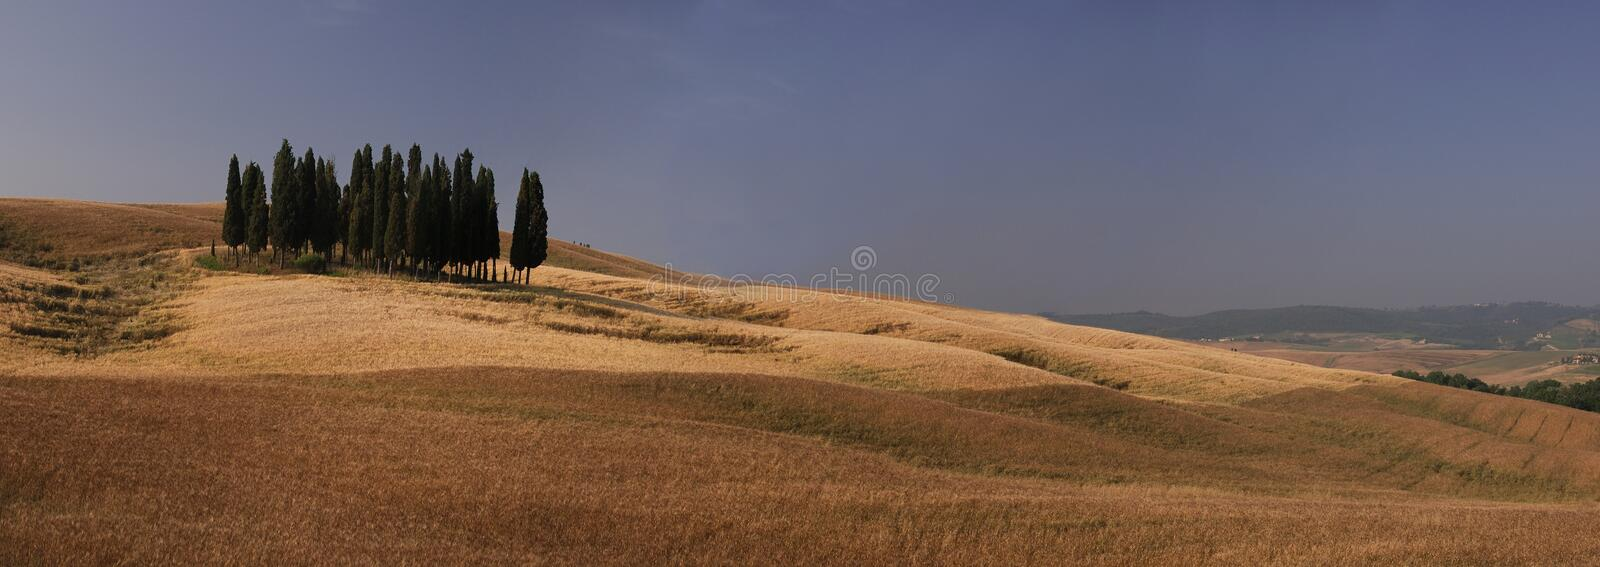 Group of cypresses royalty free stock images